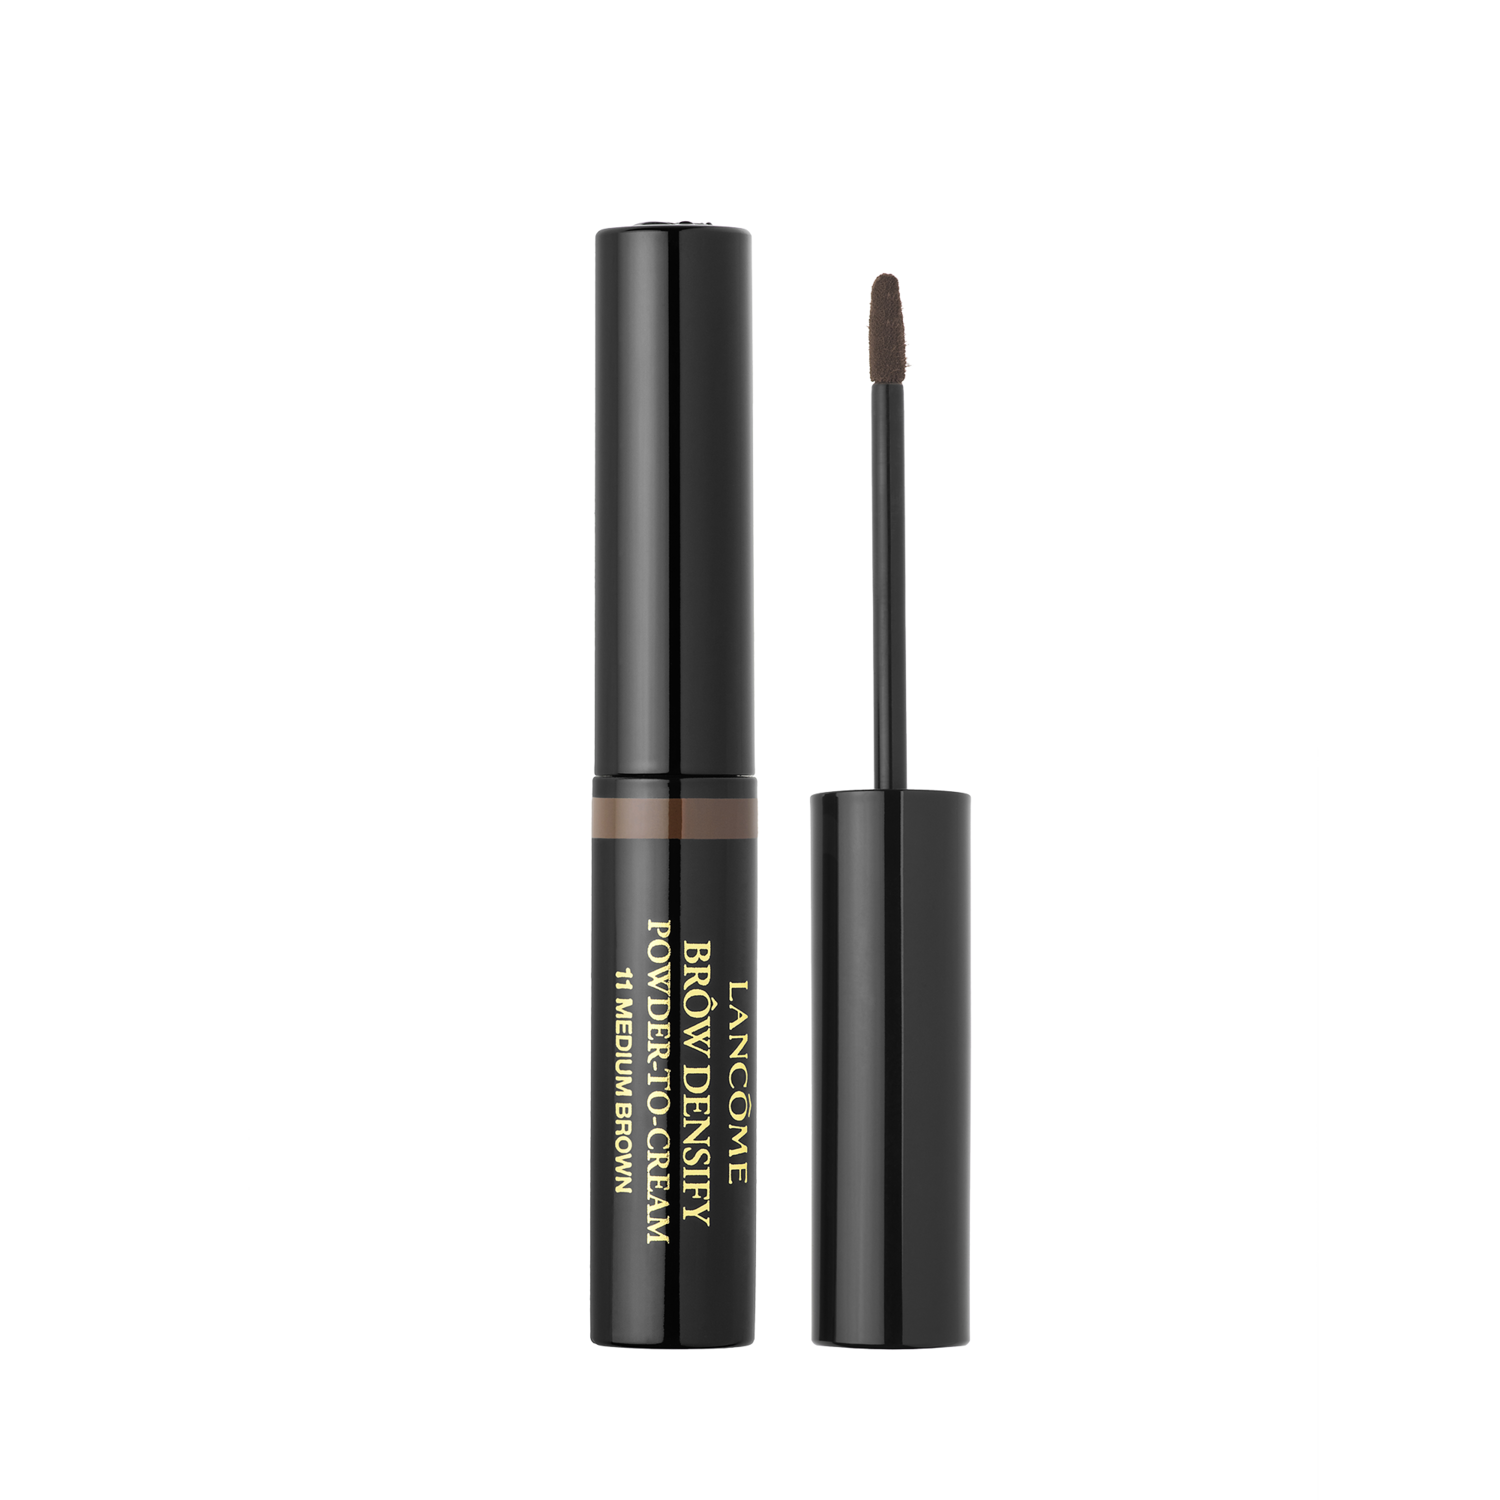 BROW DENSIFY POWDER TO CREAM 11